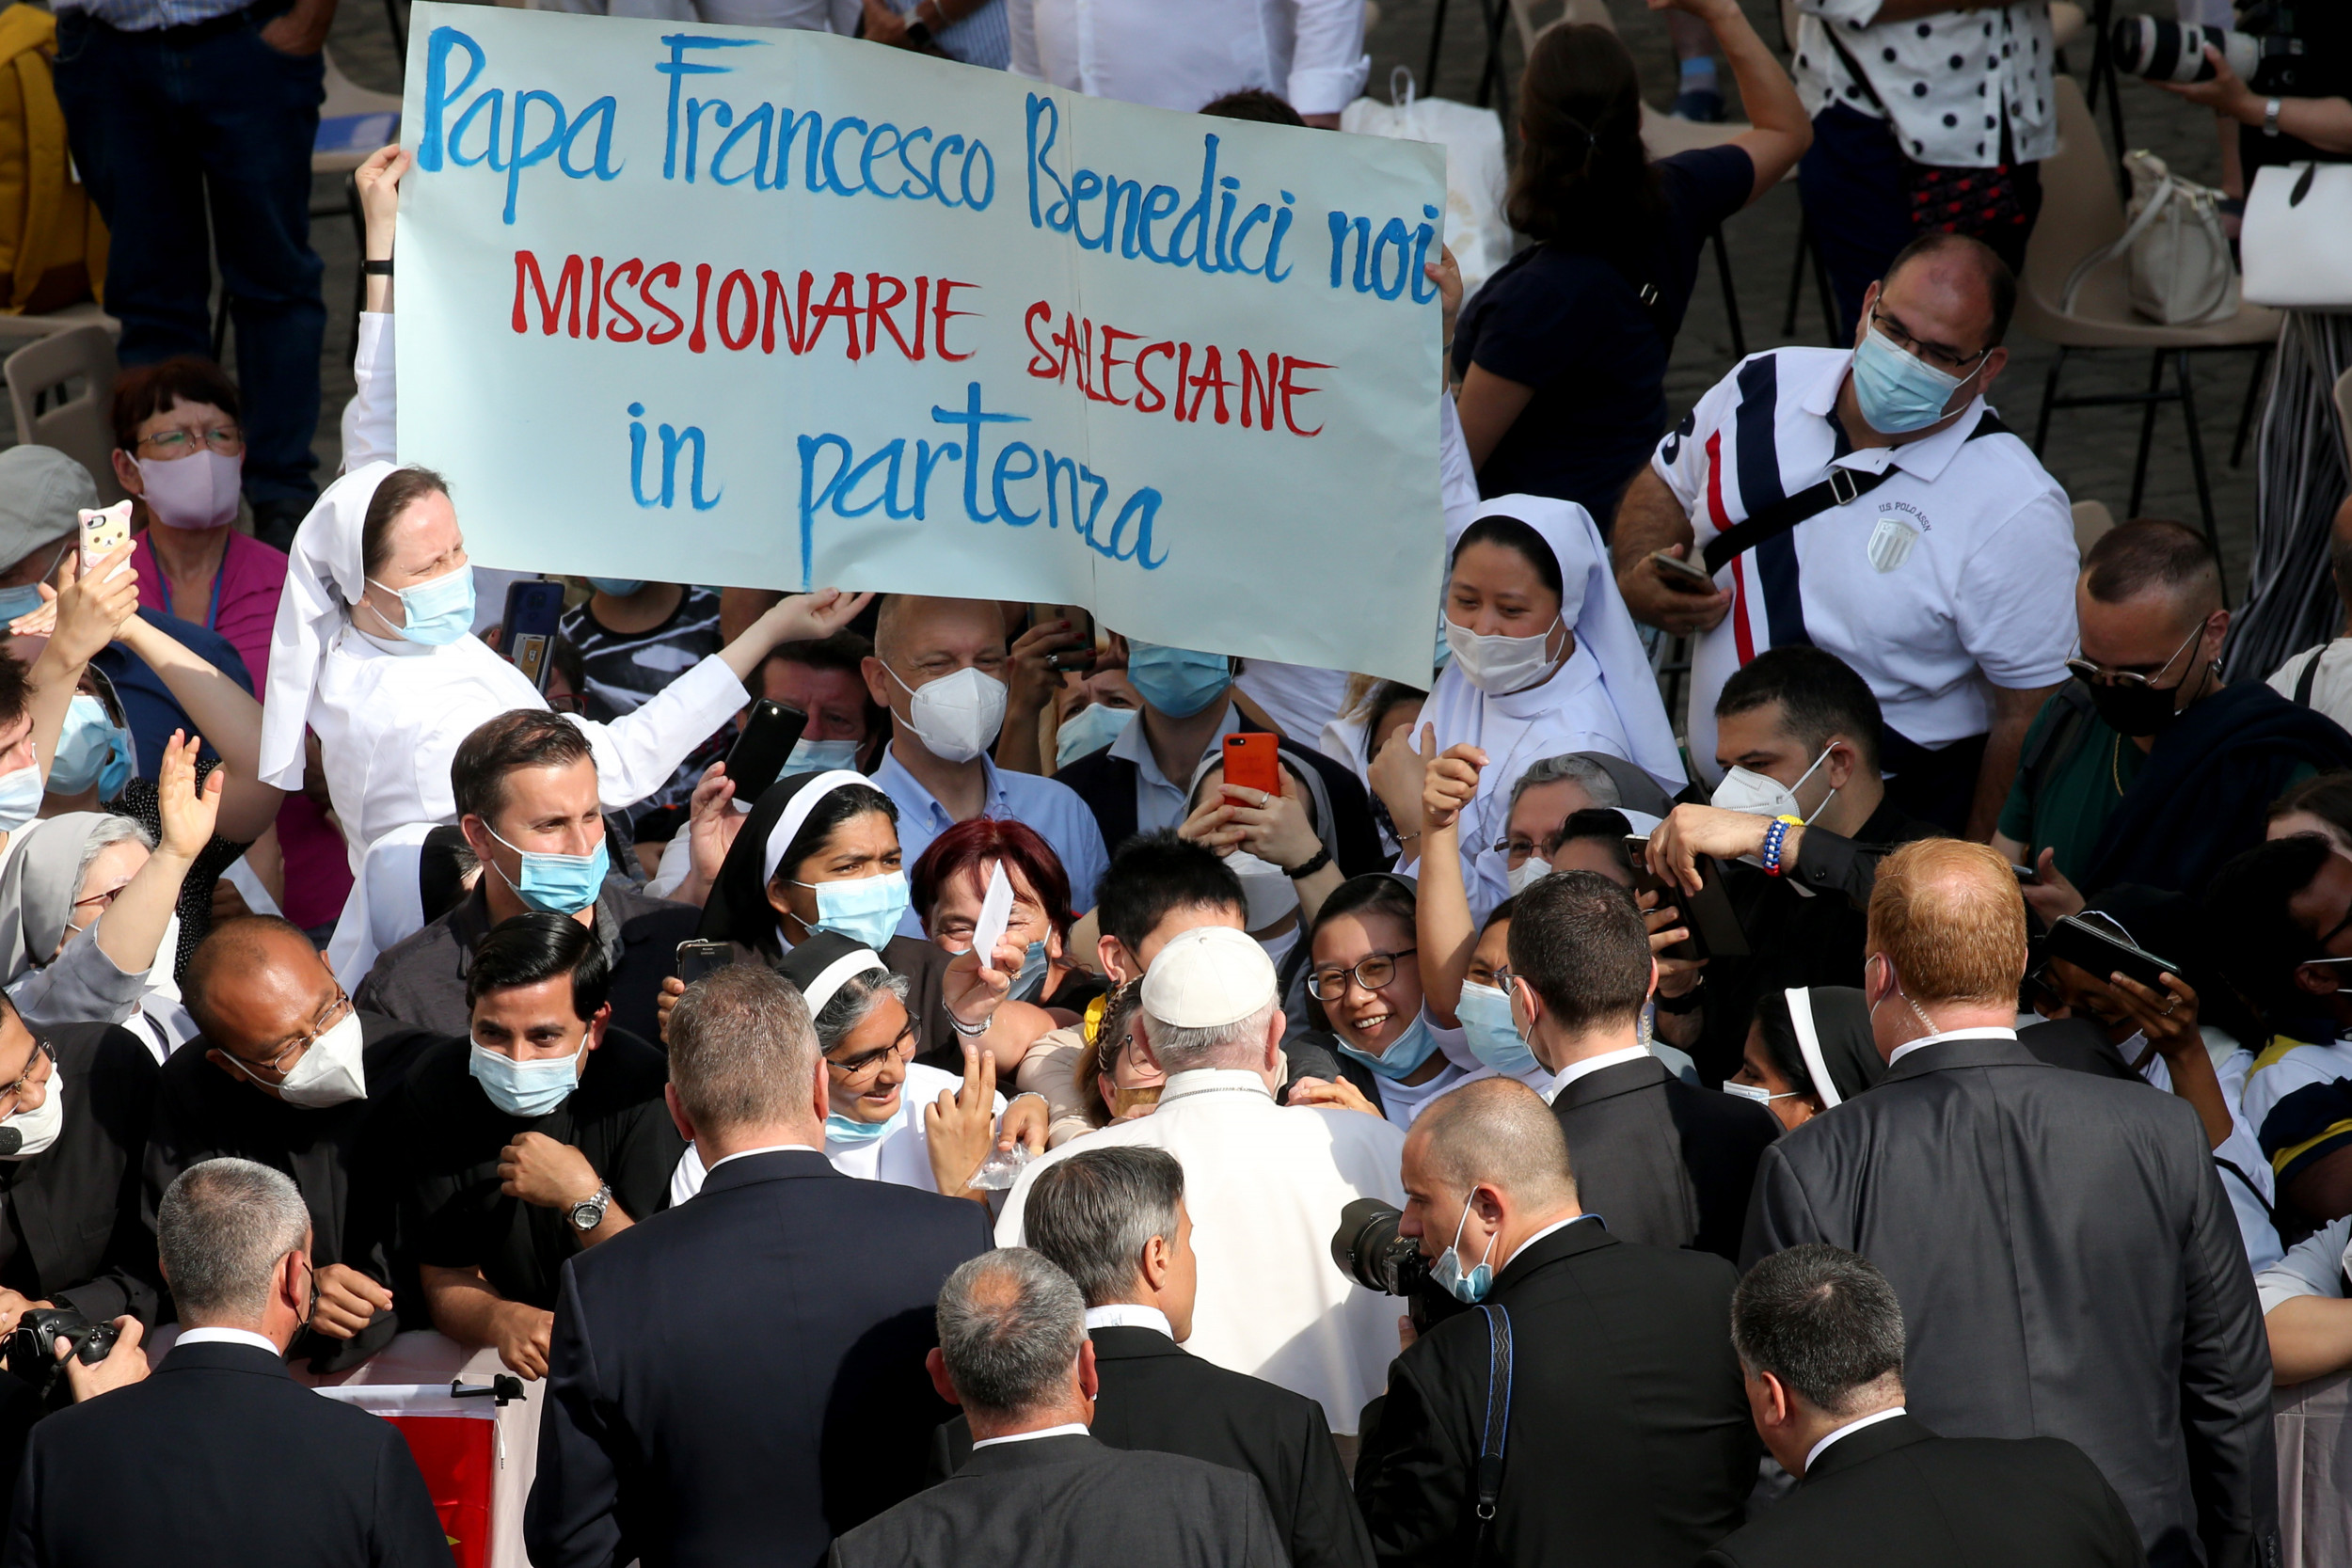 Human Rights Experts Lament Vatican's Alleged 'Protection' of Sex Abusers